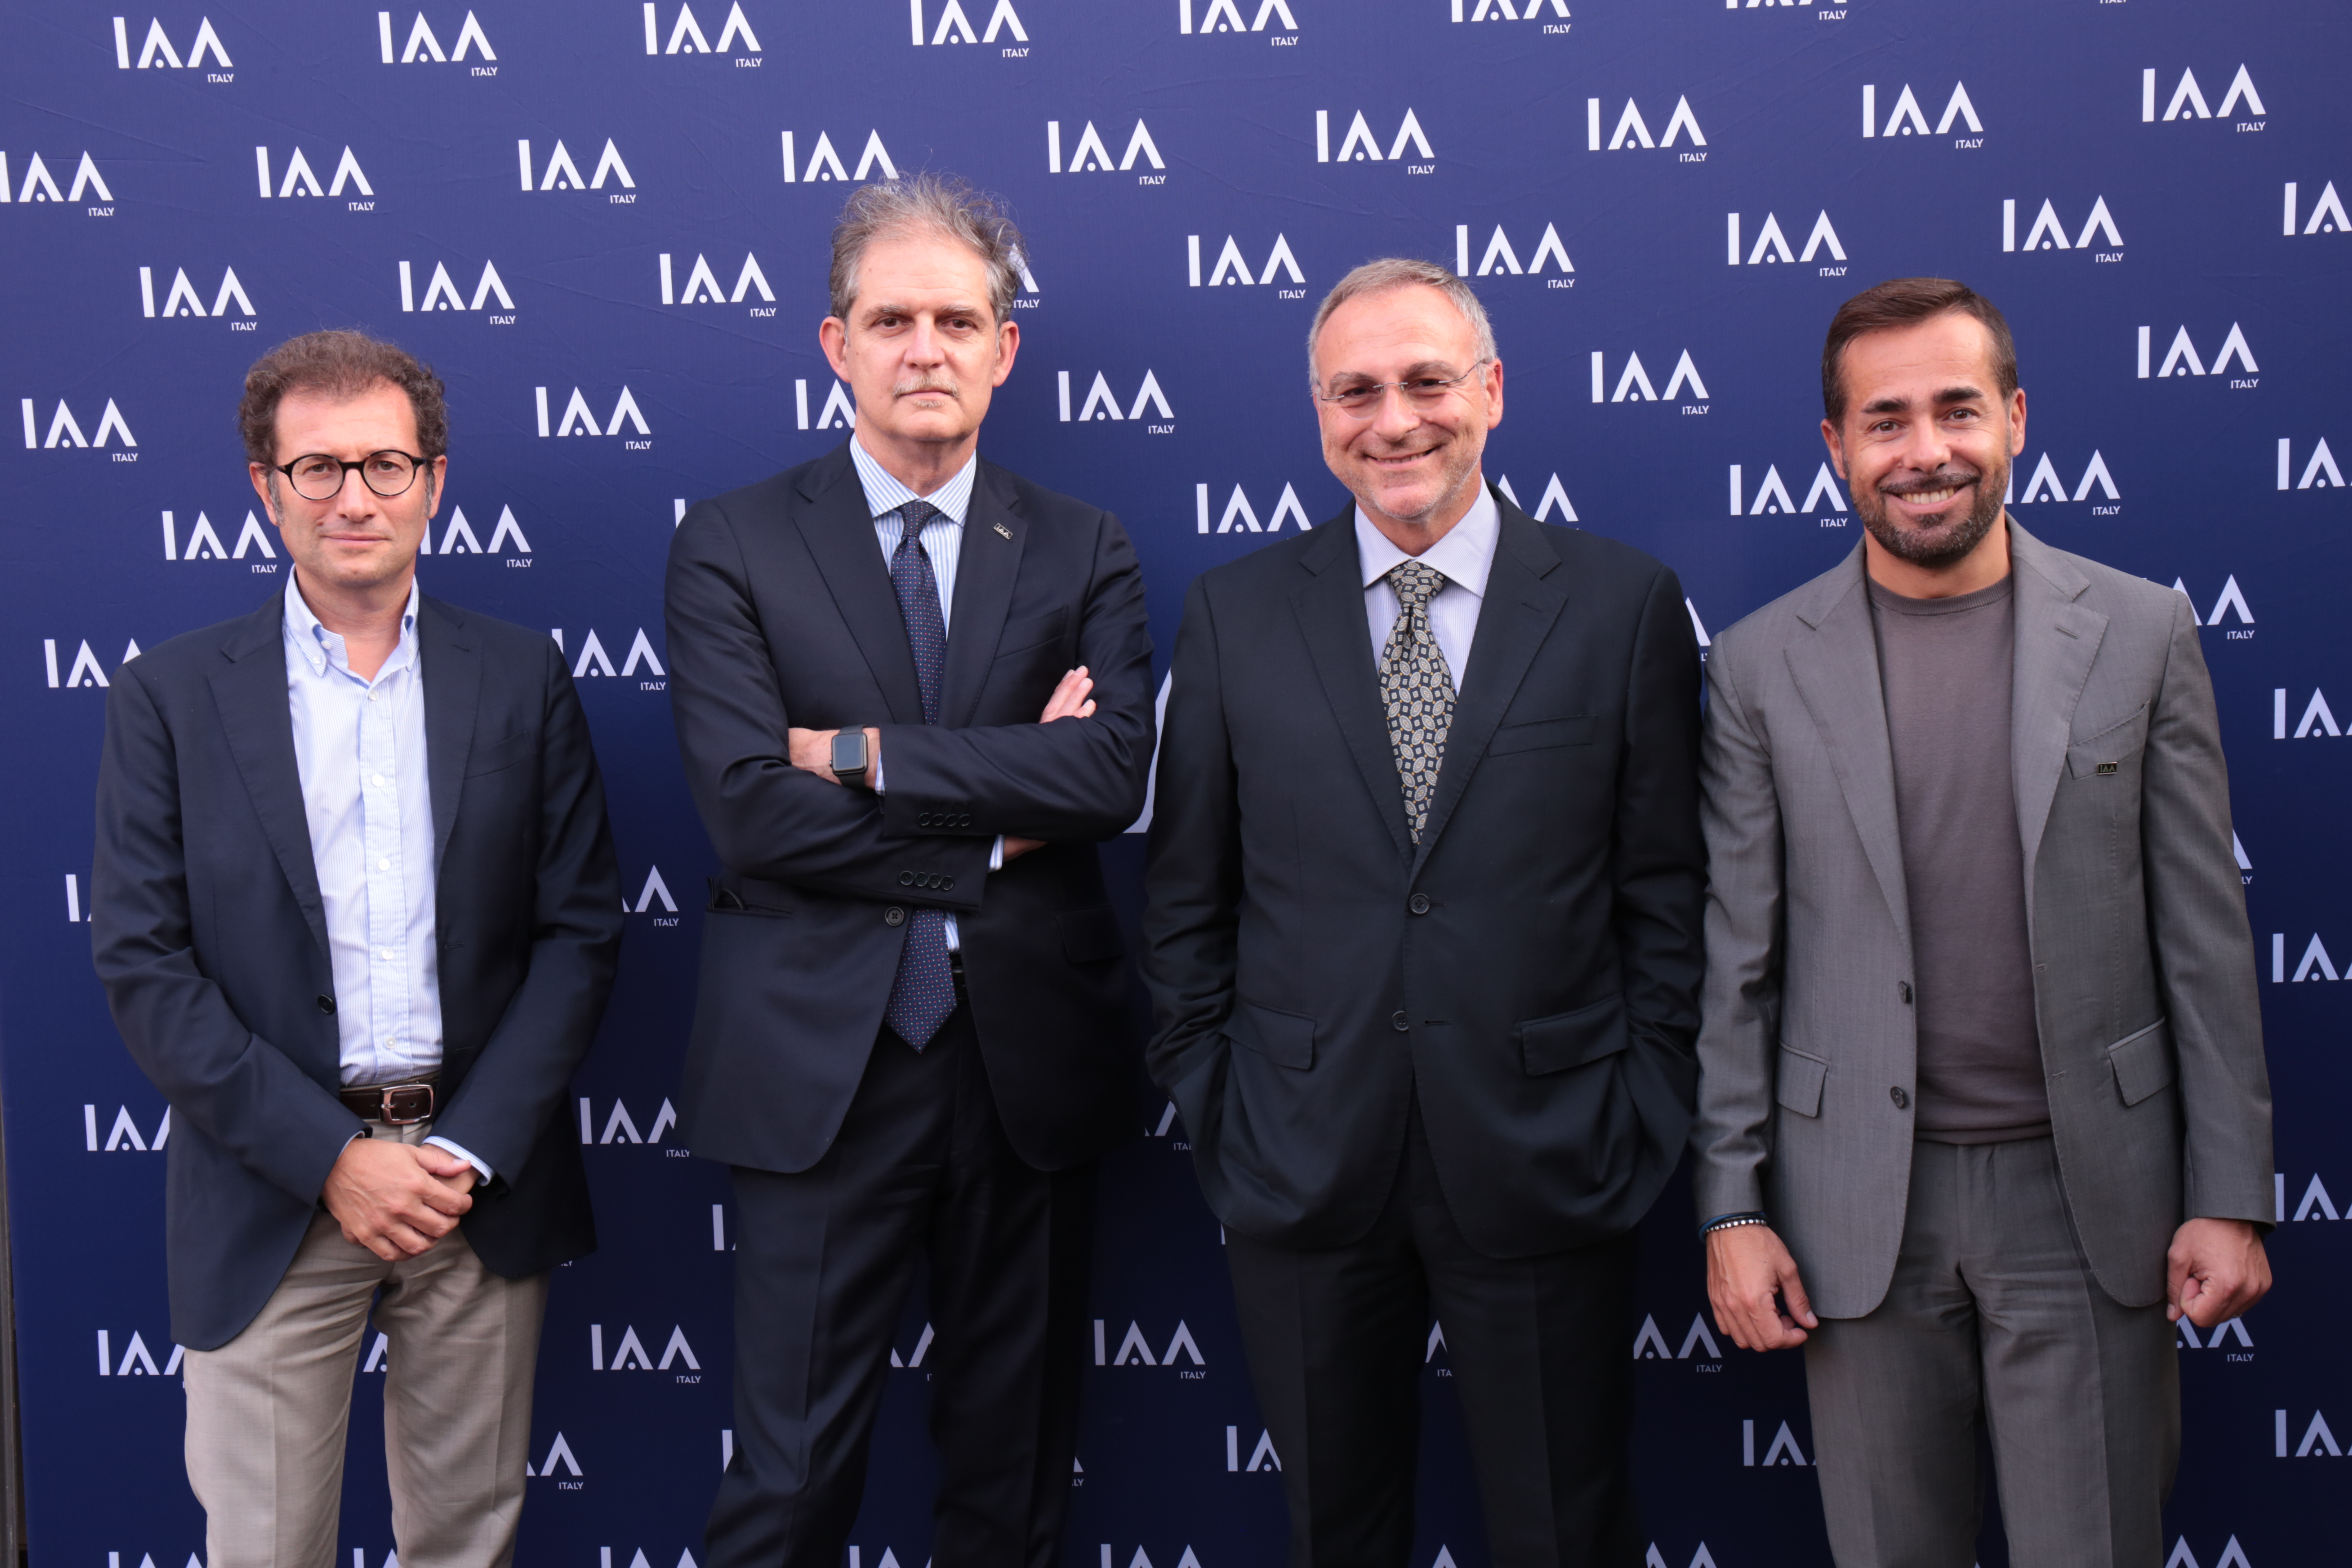 THE MEMBERS' MEETING OF IAA ITALY CHAPTER